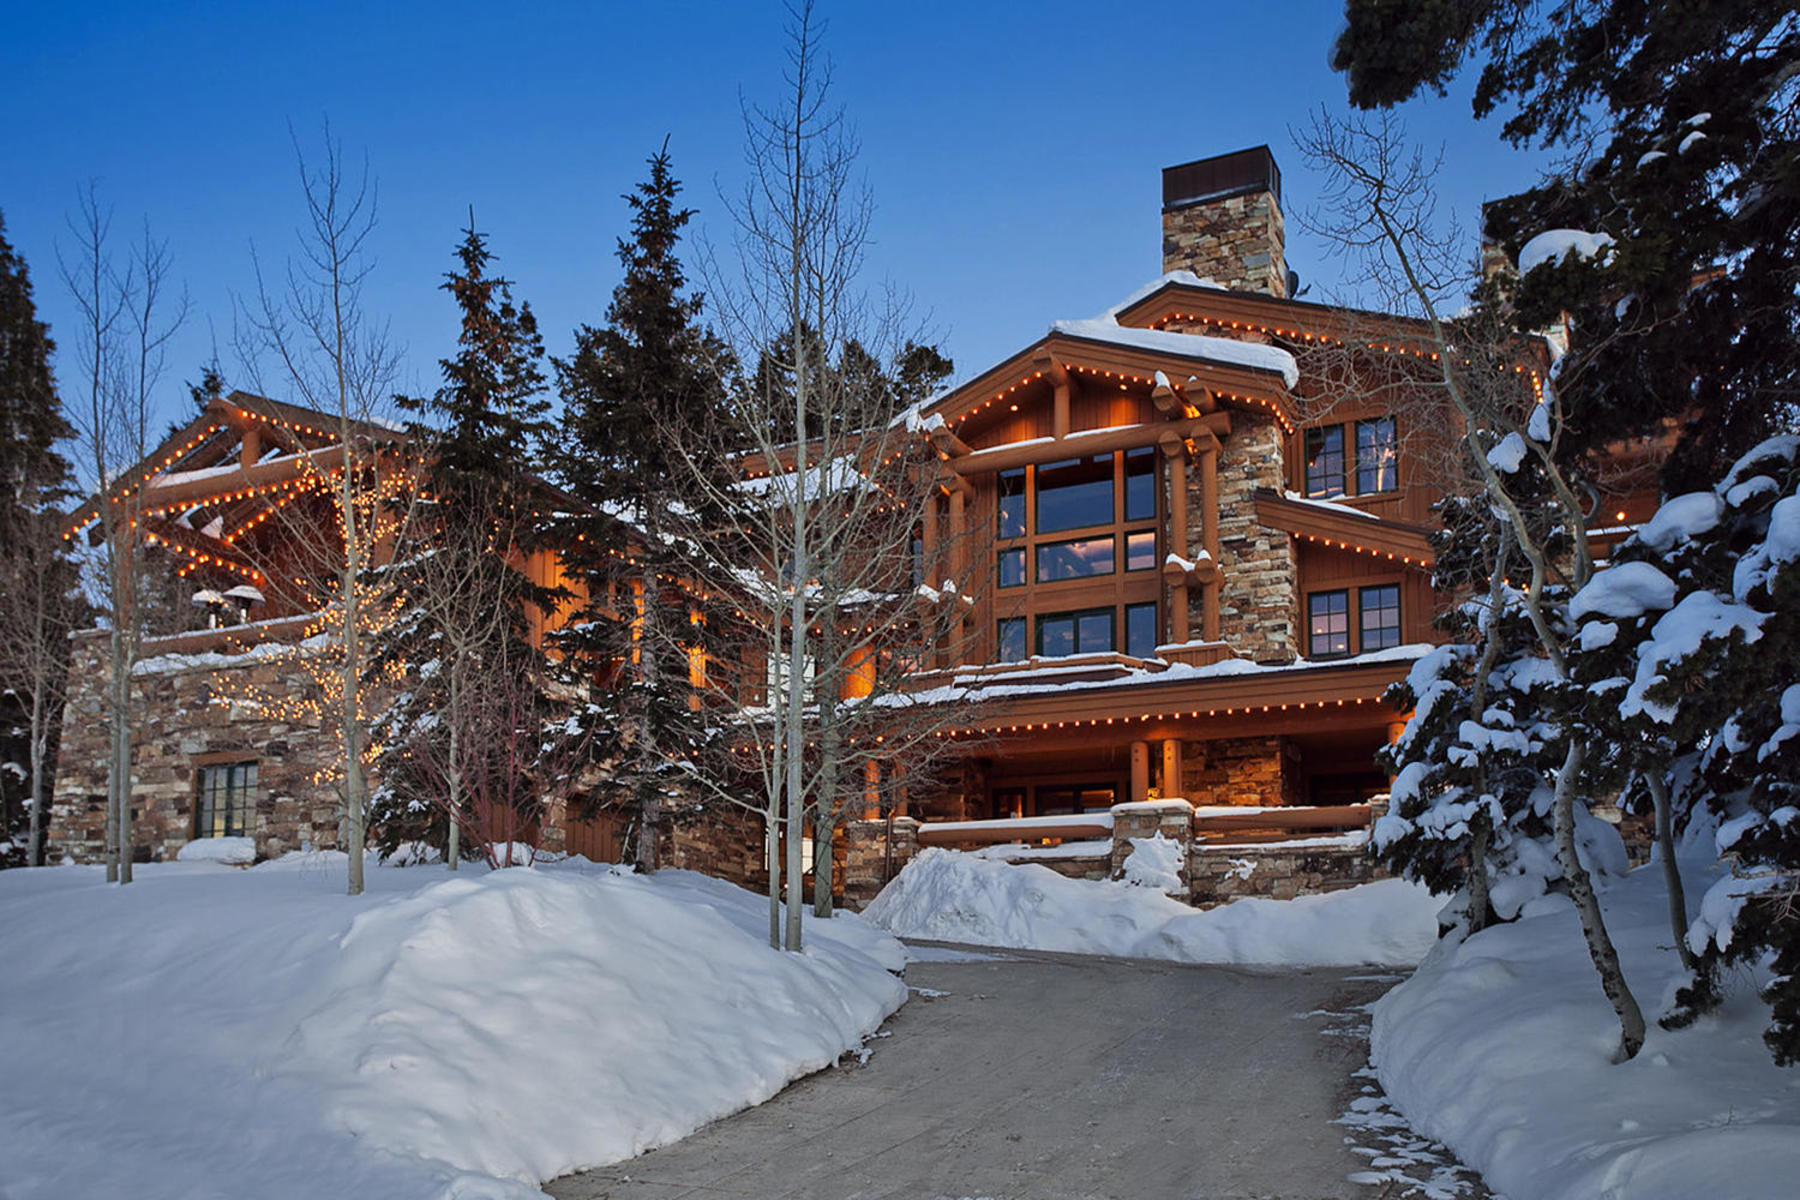 独户住宅 为 销售 在 Magnificent Bald Eagle Ski Lodge Home 7831 Hawk Ct Park City, Utah, 84060 United States